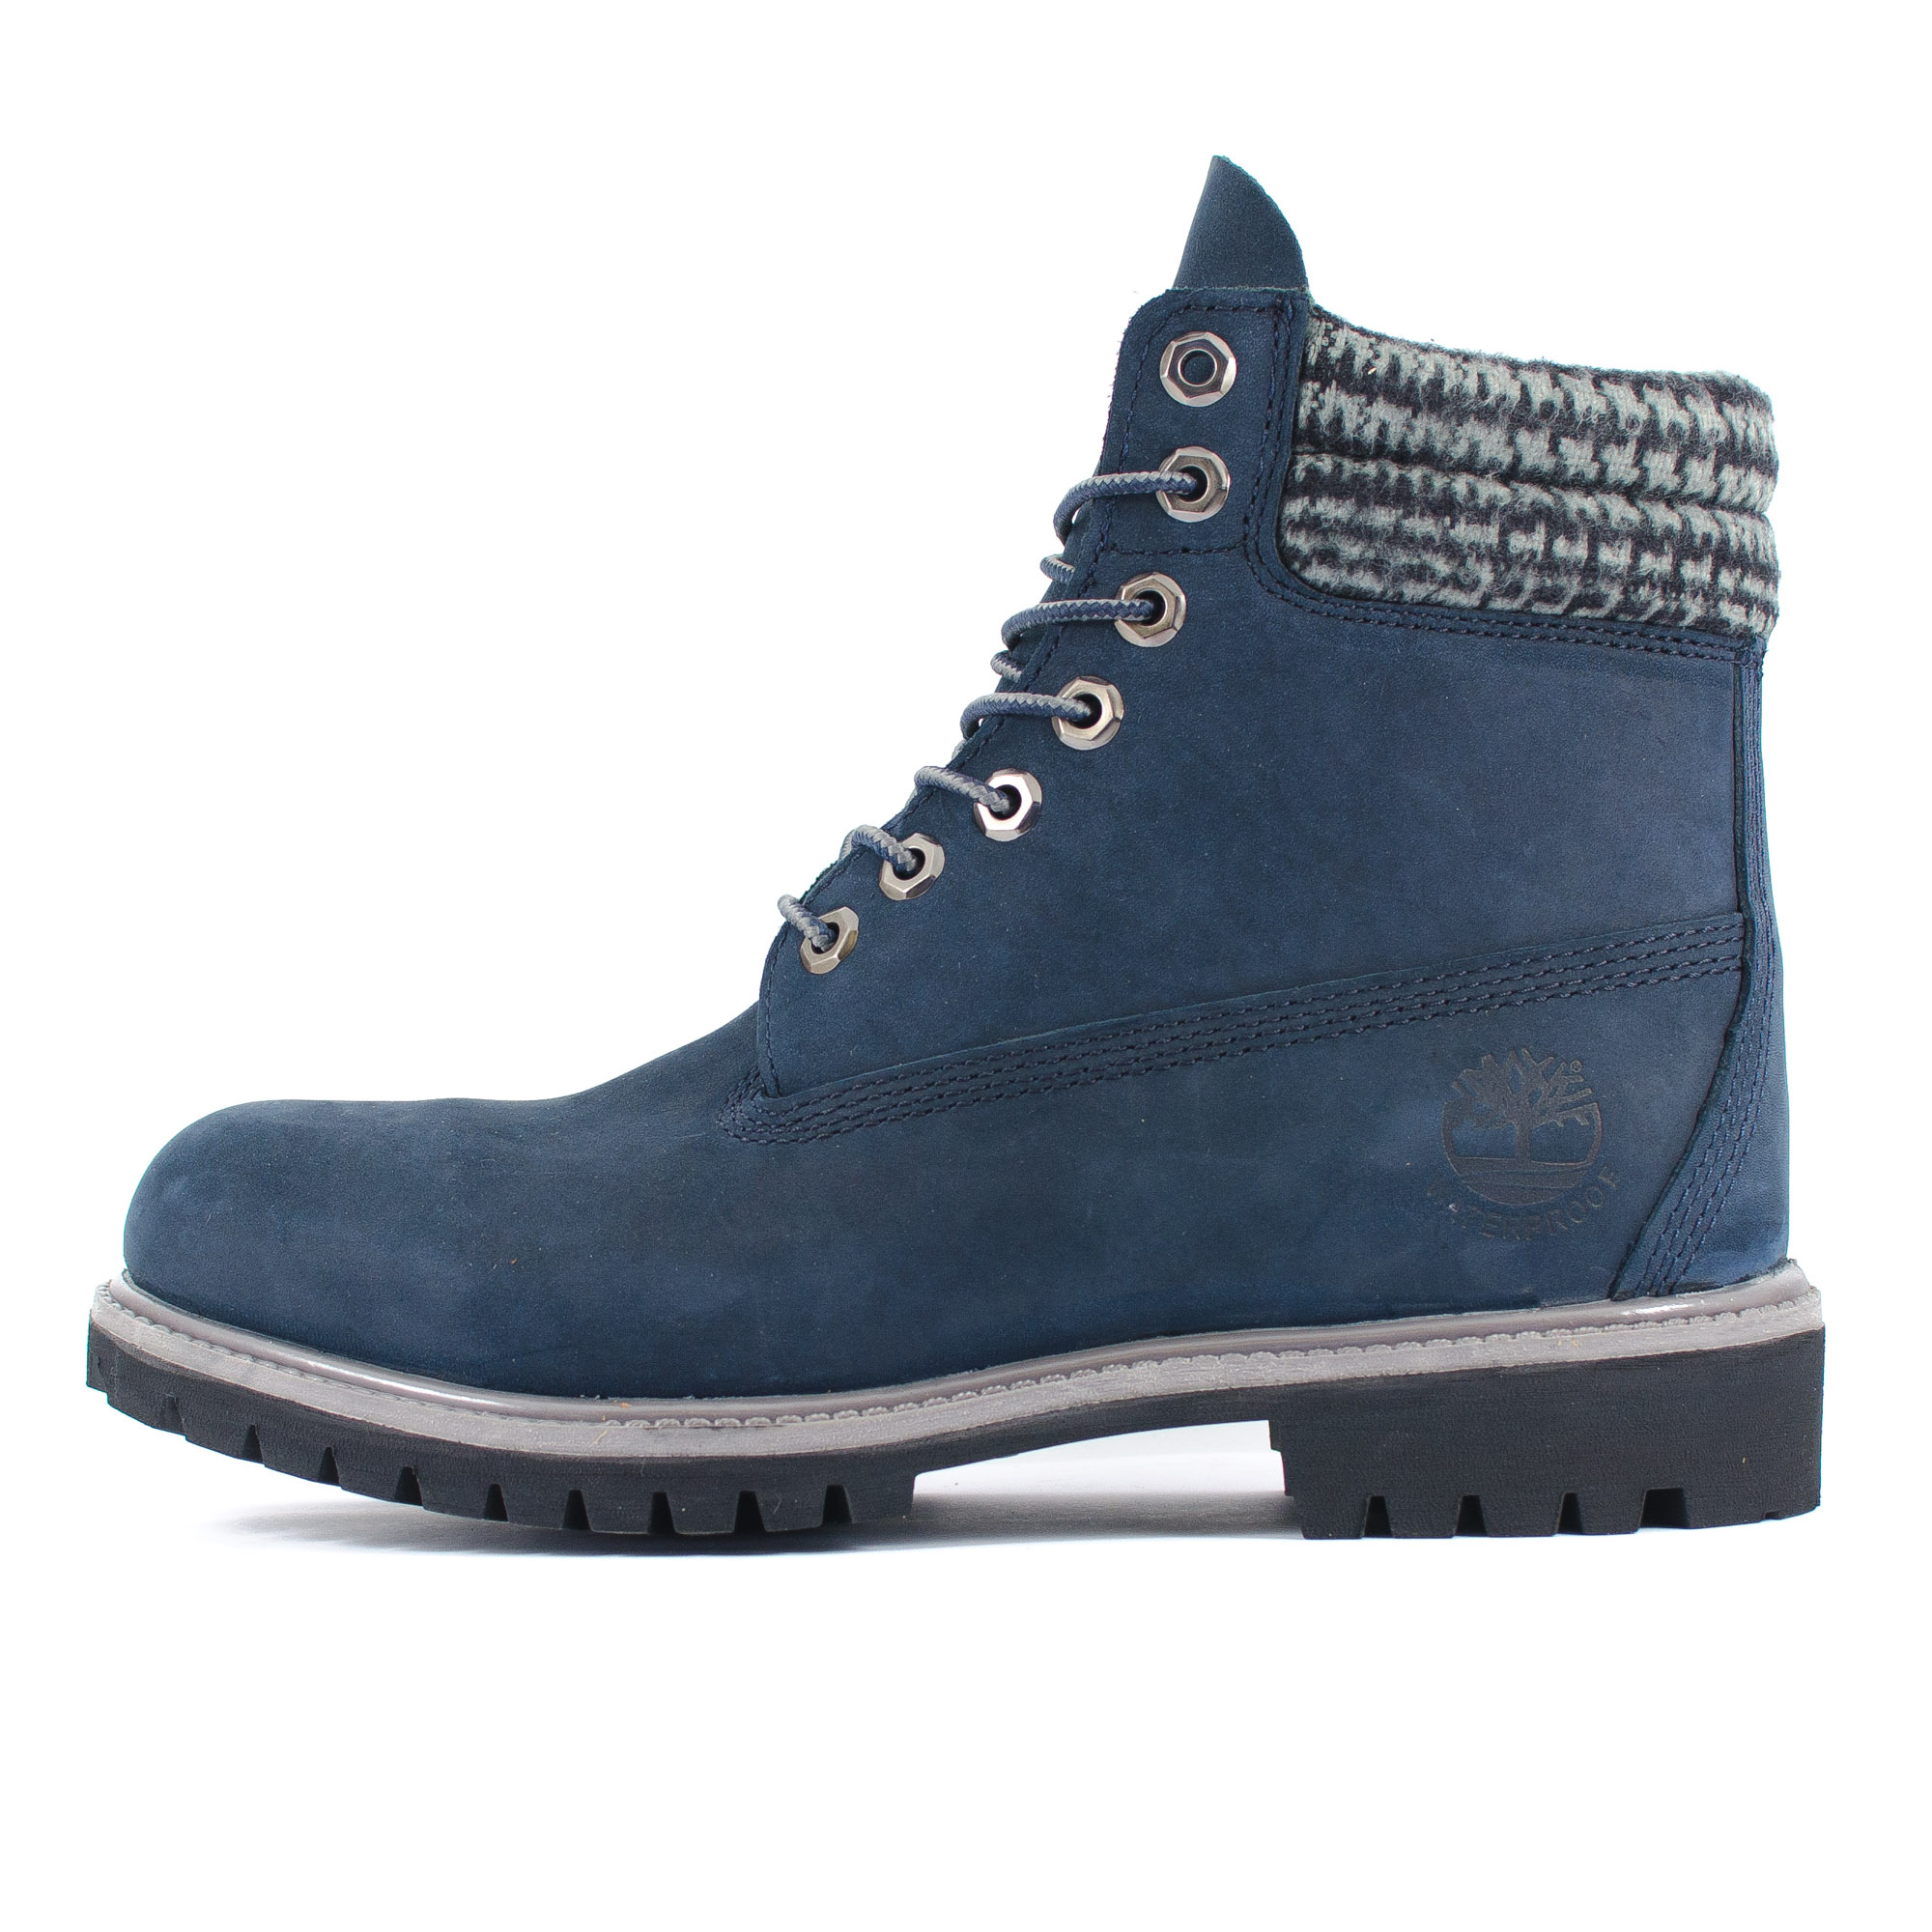 Fantastic Book Of Navy Timberland Boots Womens In Germany By James | Sobatapk.com